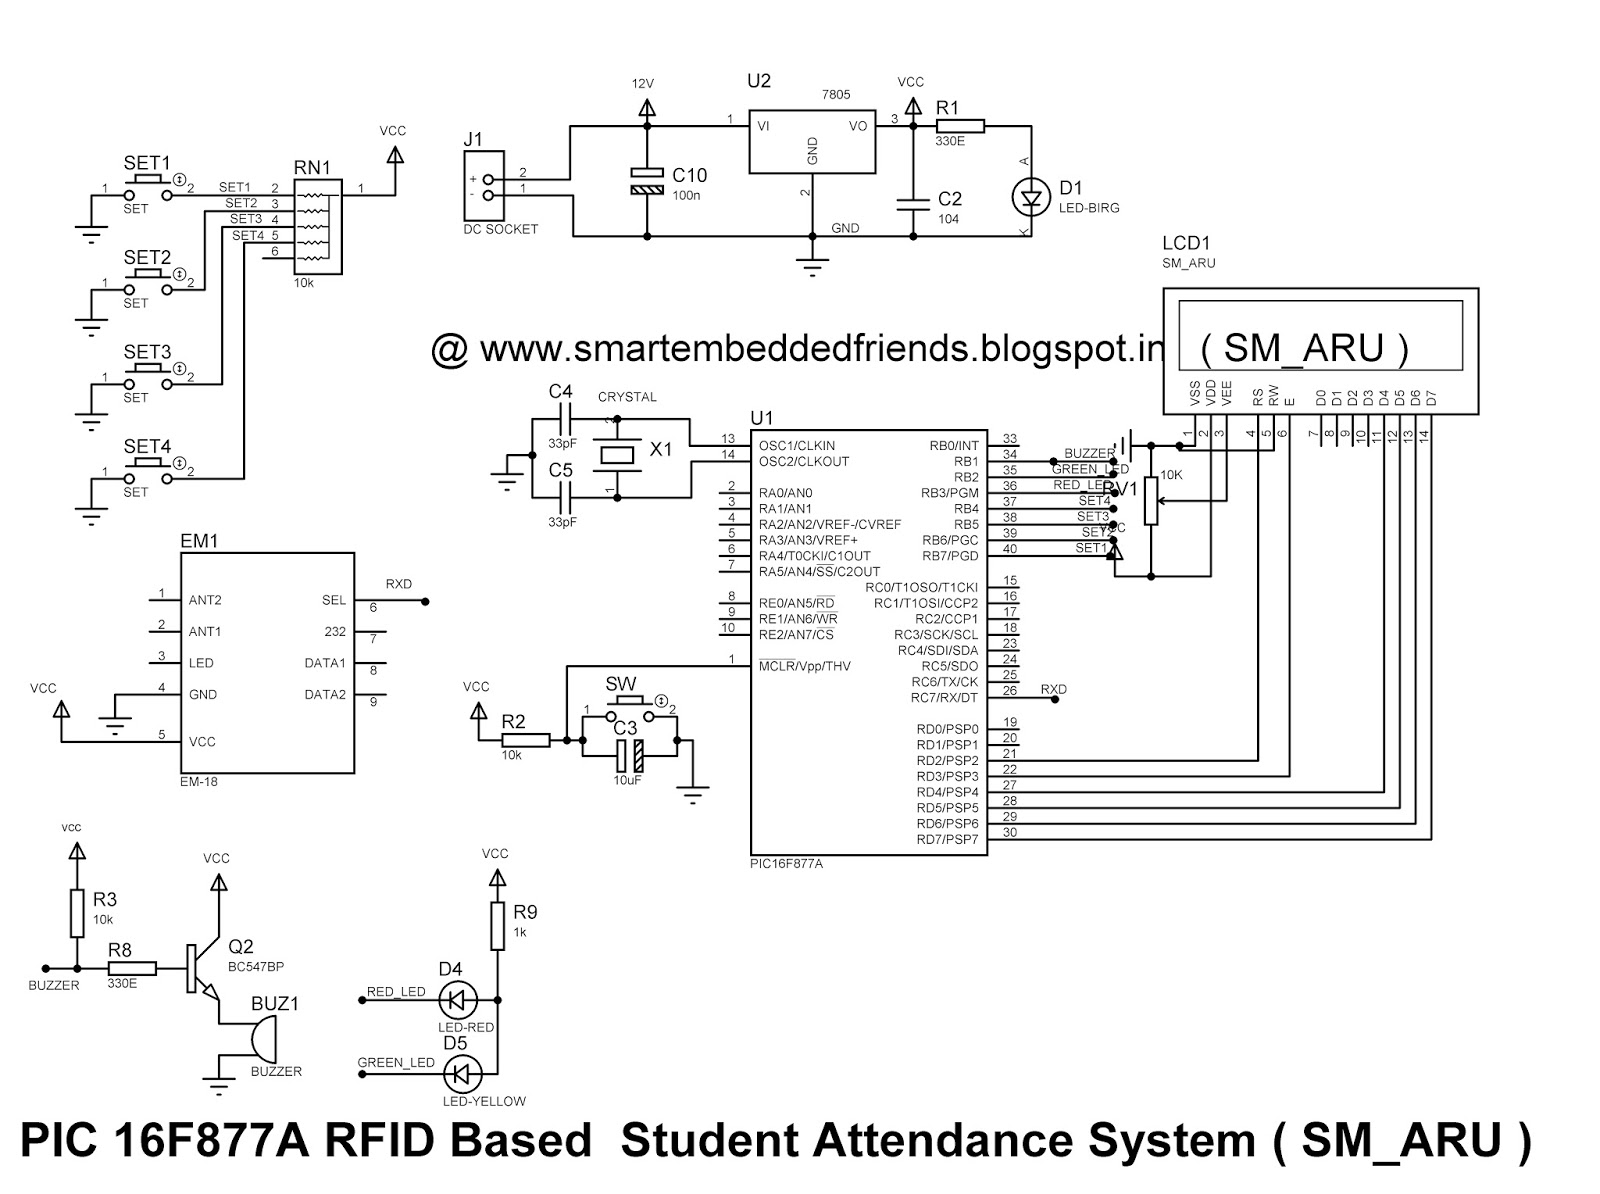 Rfid based attendance system using pic microcontroller smart pic 16f877a rfid student attendance system circuit diagram smaru ccuart Images